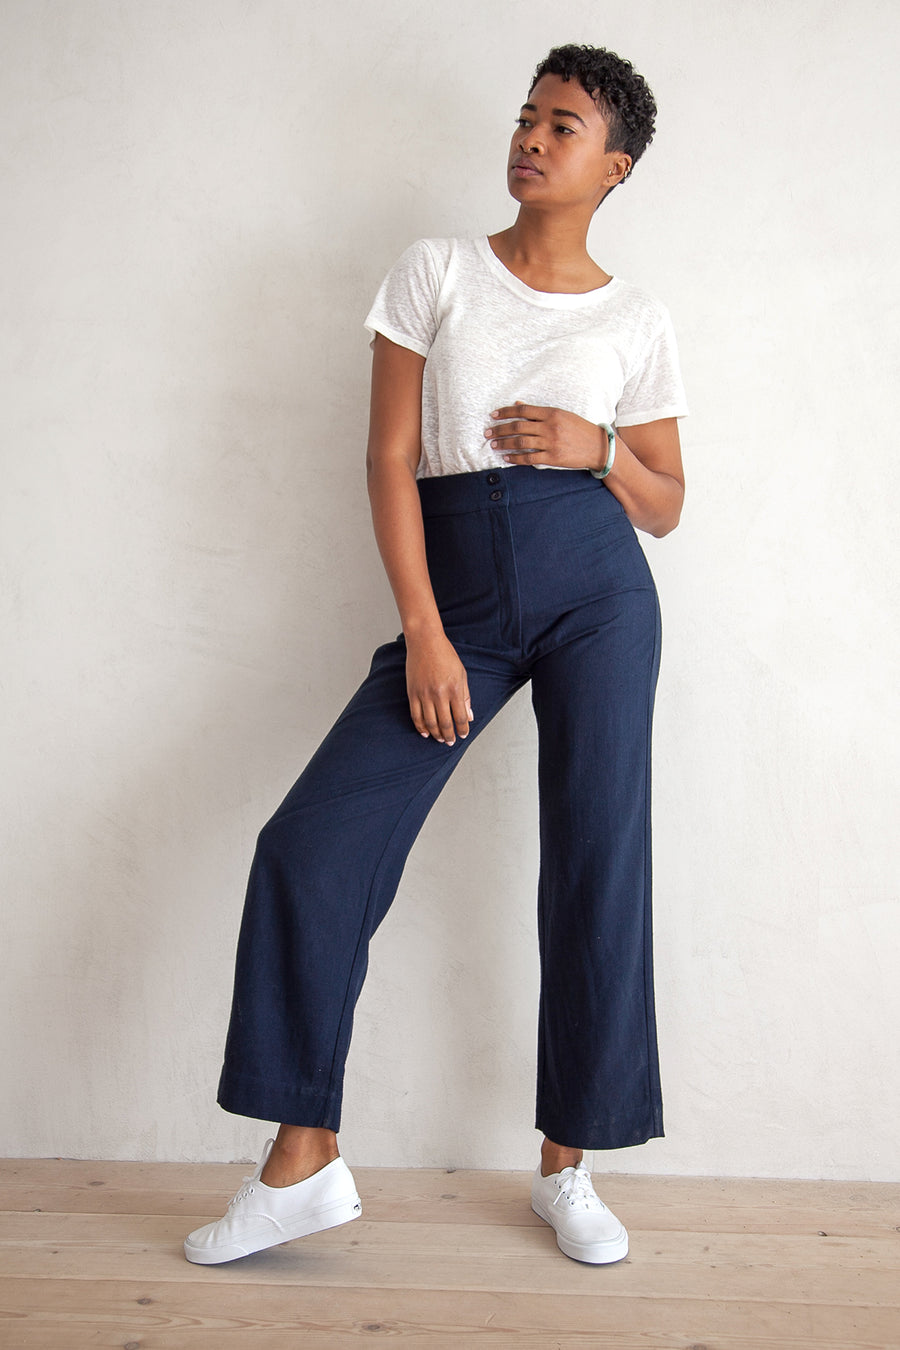 SILK FLY FRONT PANT - NAVY